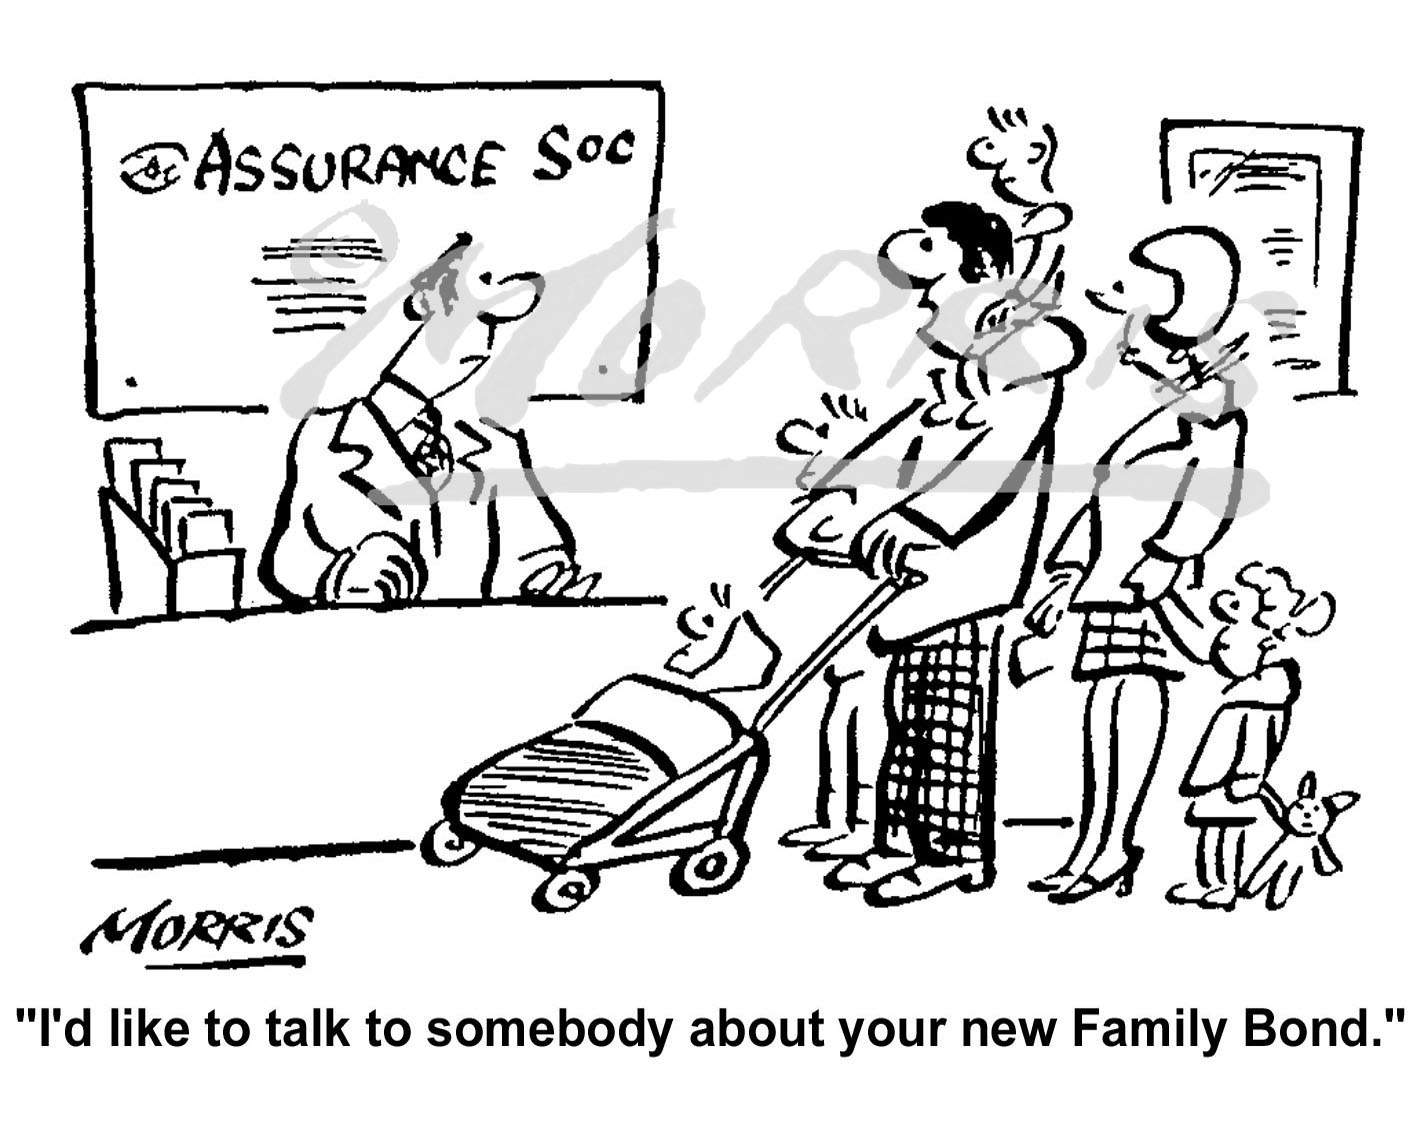 Insurance family bond policy cartoon Ref: 0404bw